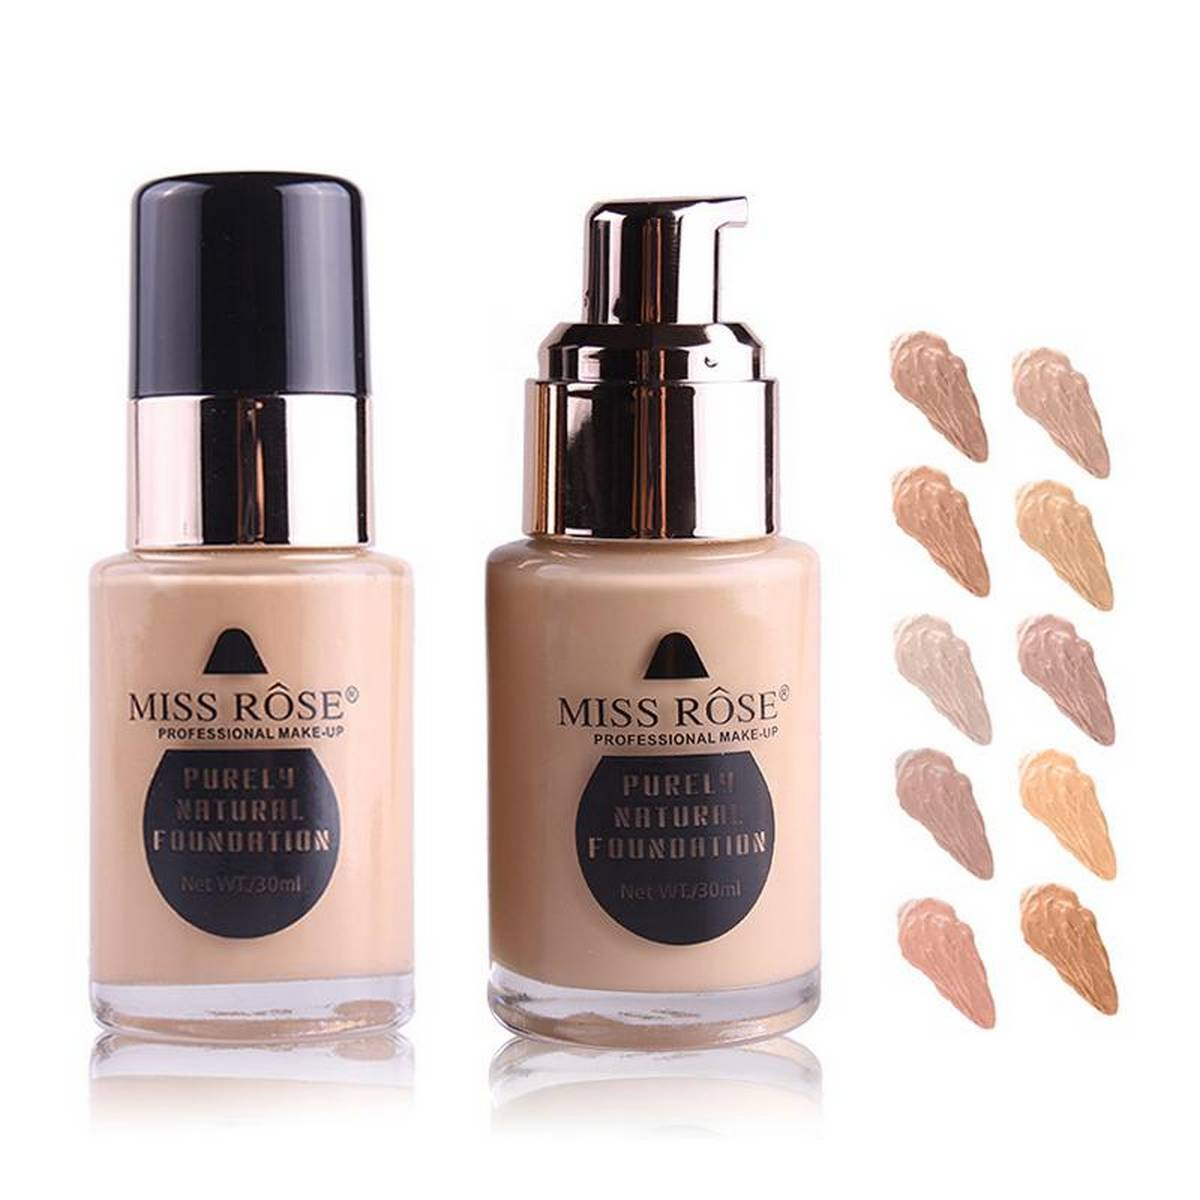 Miss Rose Purely Natural Liquid Foundation Base Makeup - 30ml ( 6 Shades Available )